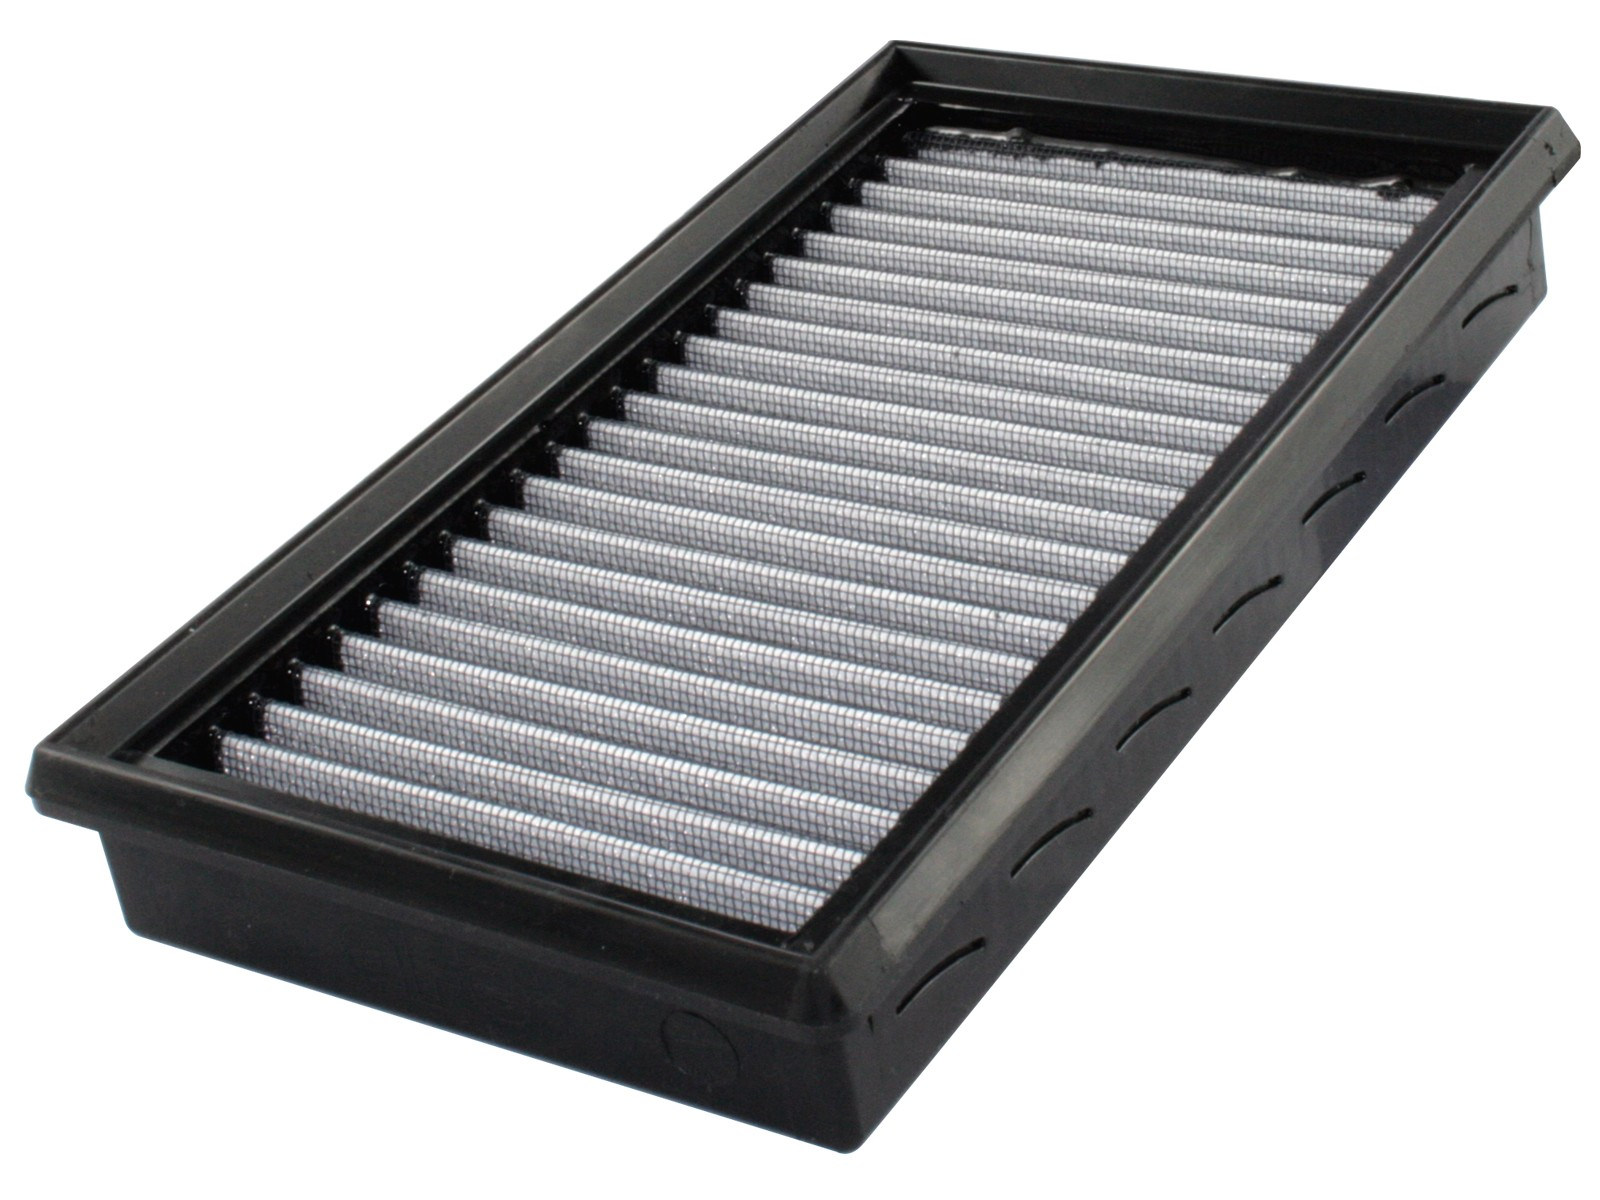 aFe POWER 31-10047 Magnum FLOW Pro DRY S Air Filter